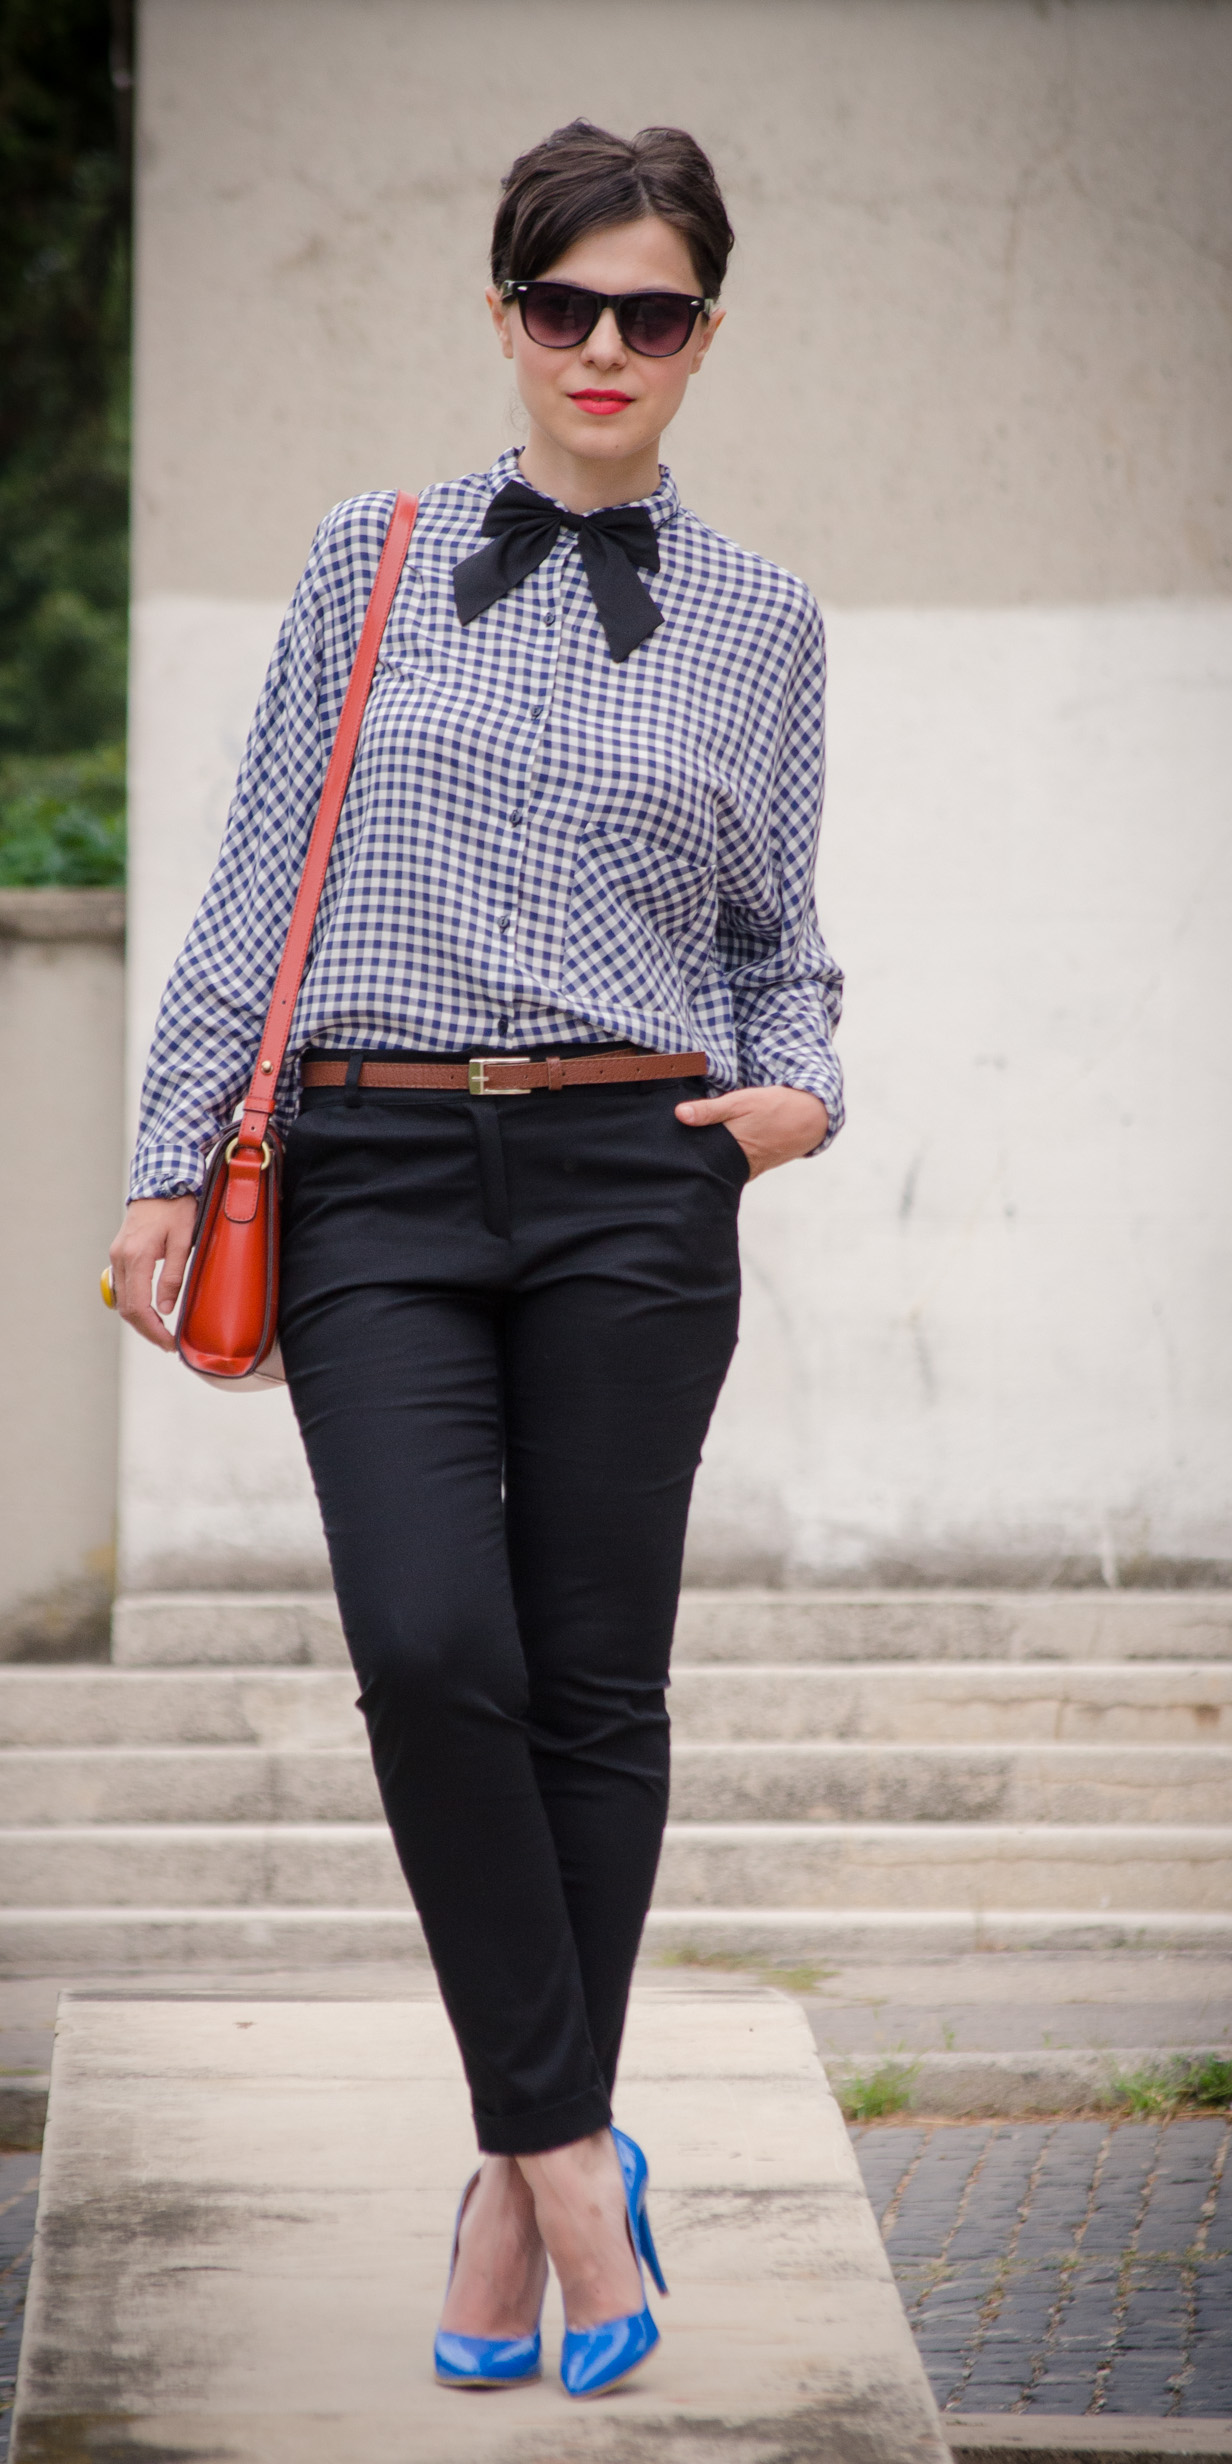 preppy back to school outfit checkers shirt navy blue heels orange satchel black bow tie black pants